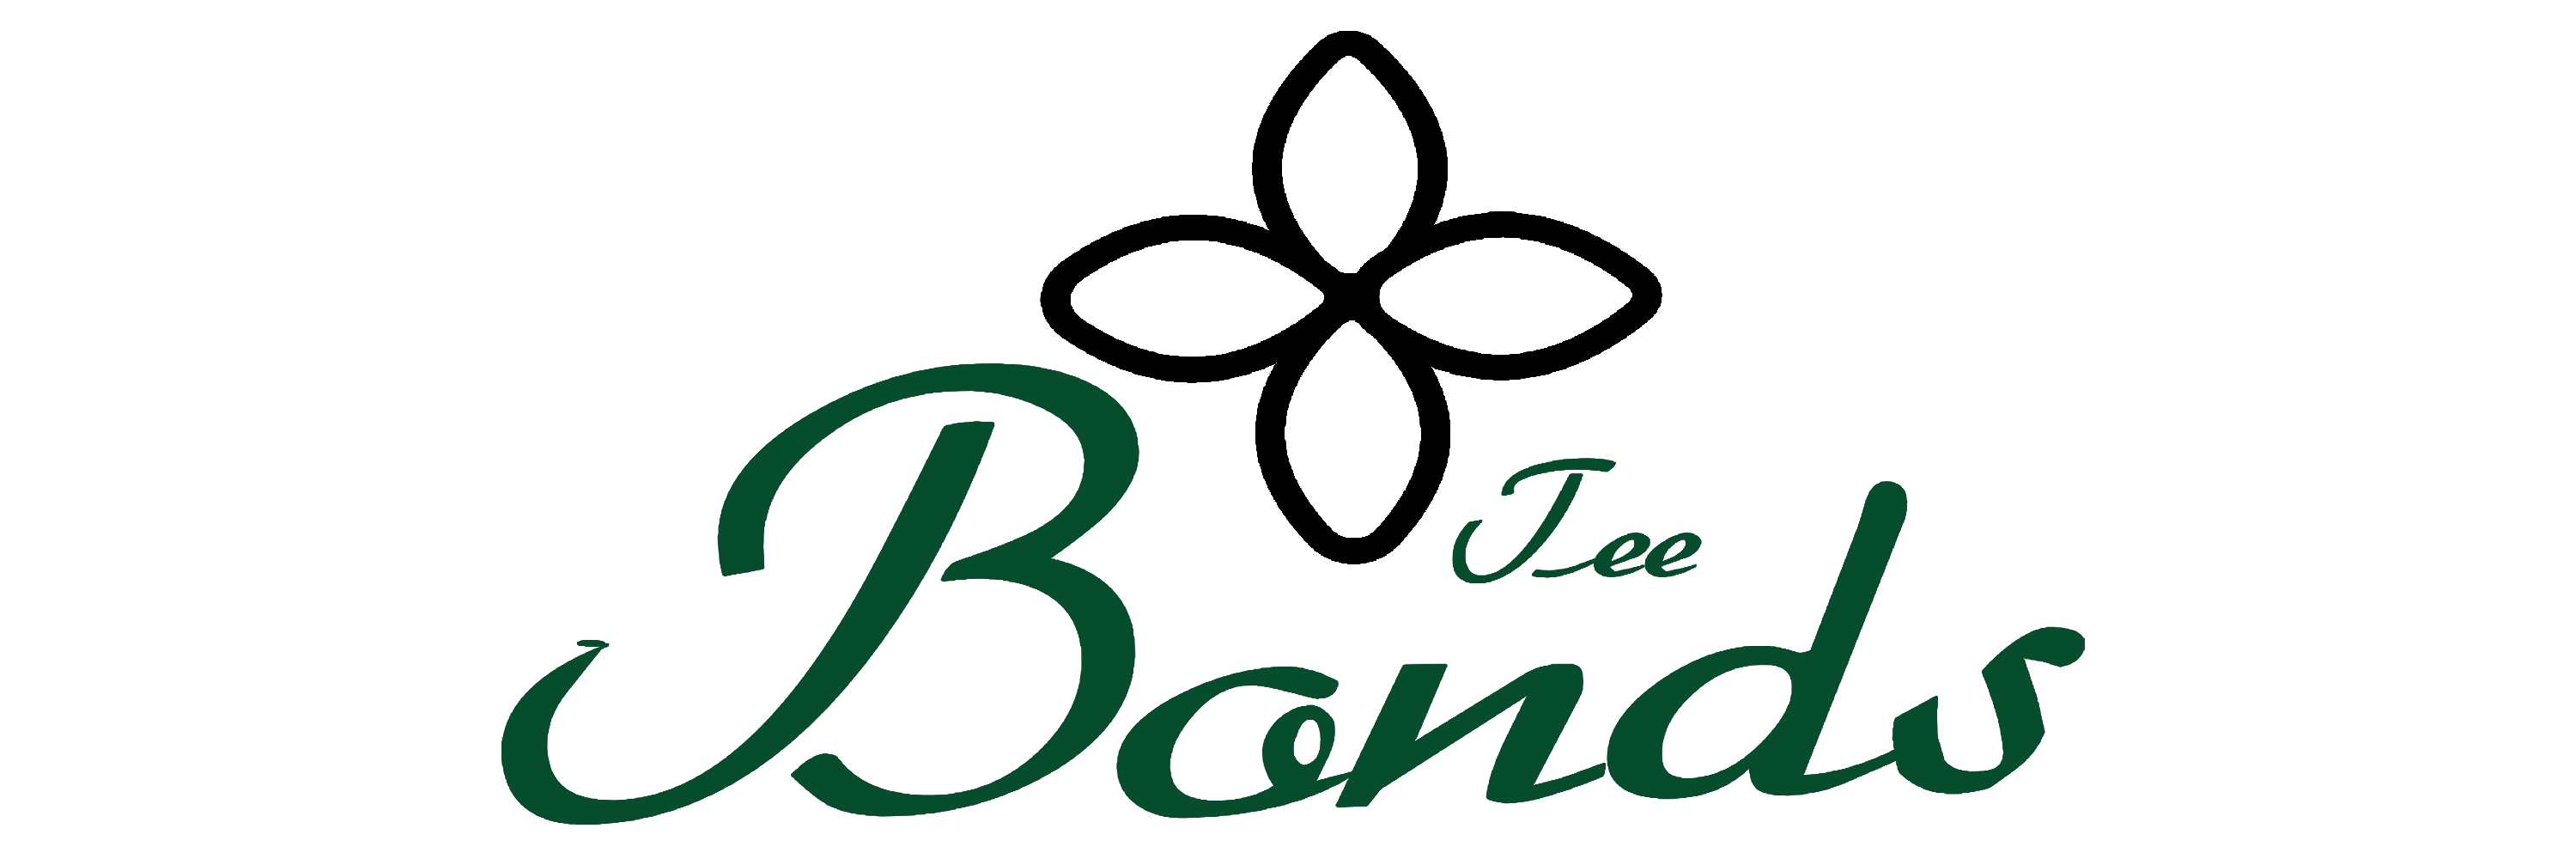 Bondstee – The best loving fashion – Loving t-shirt, hoodie, tank update for man and woman.